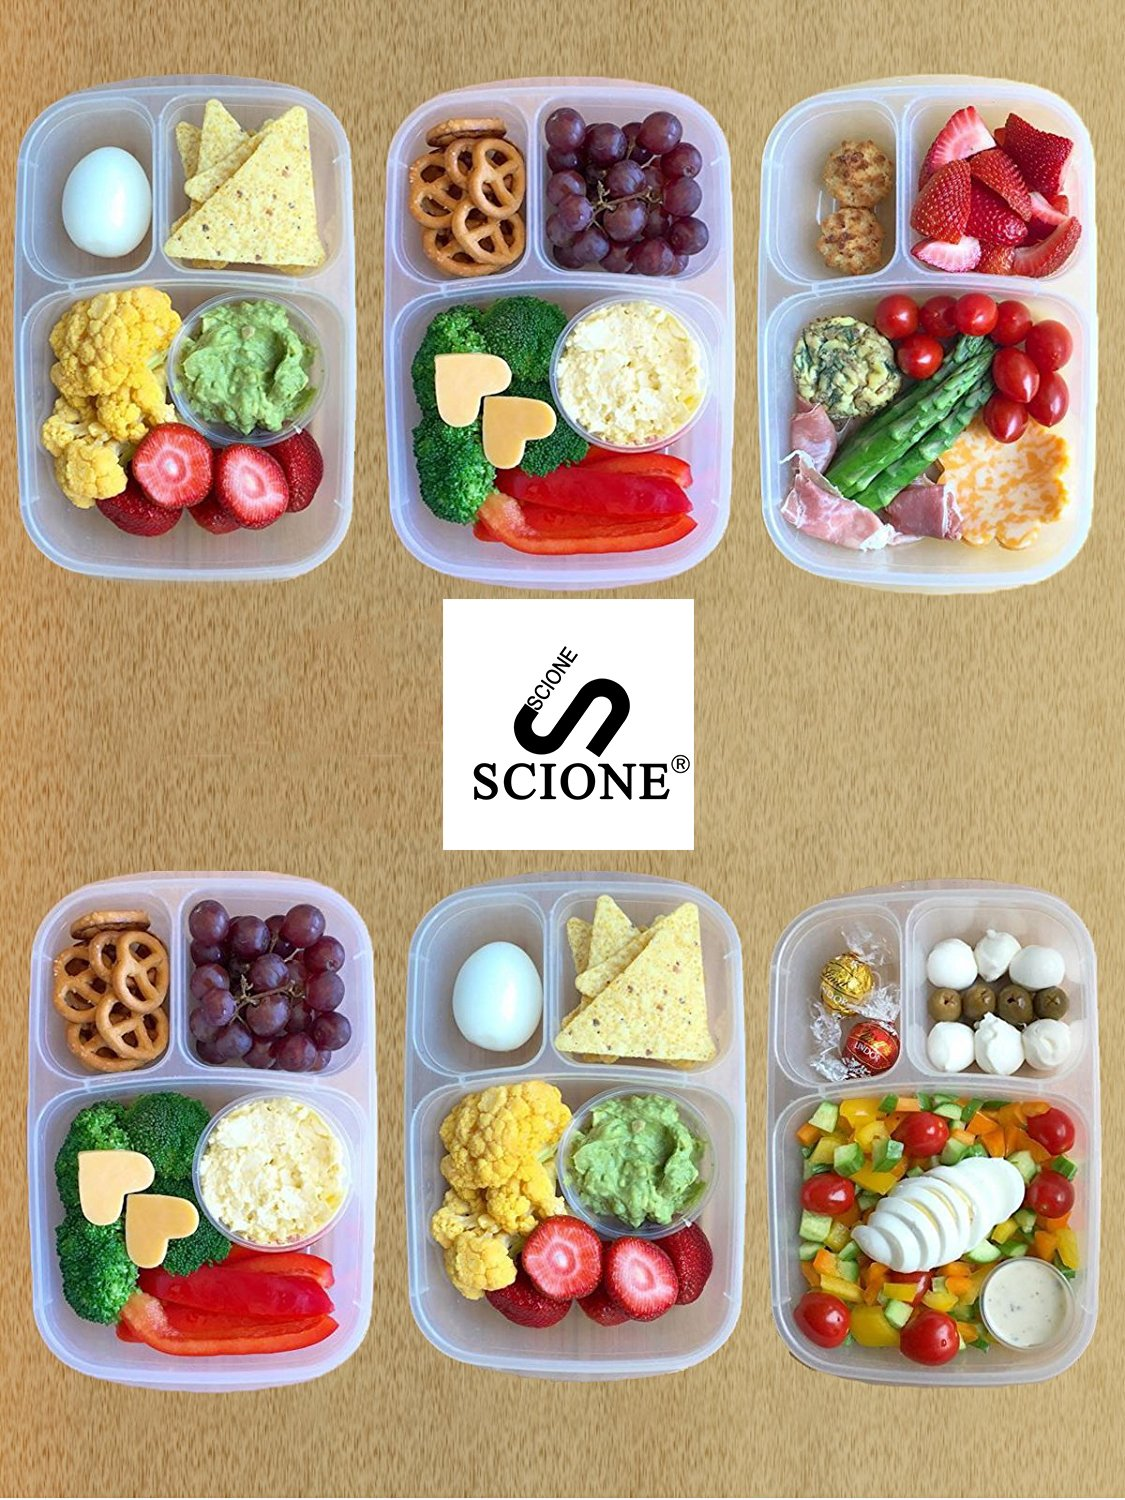 Meal Prep Containers 3 Compartment 10 Pack Food Prep Containers with Lids Portion Control Reauable Freezer Food Storage Plastic Salad Stackable Bento Lunch Box, Microwave, Dishwasher Safe by SCIONE (Image #2)